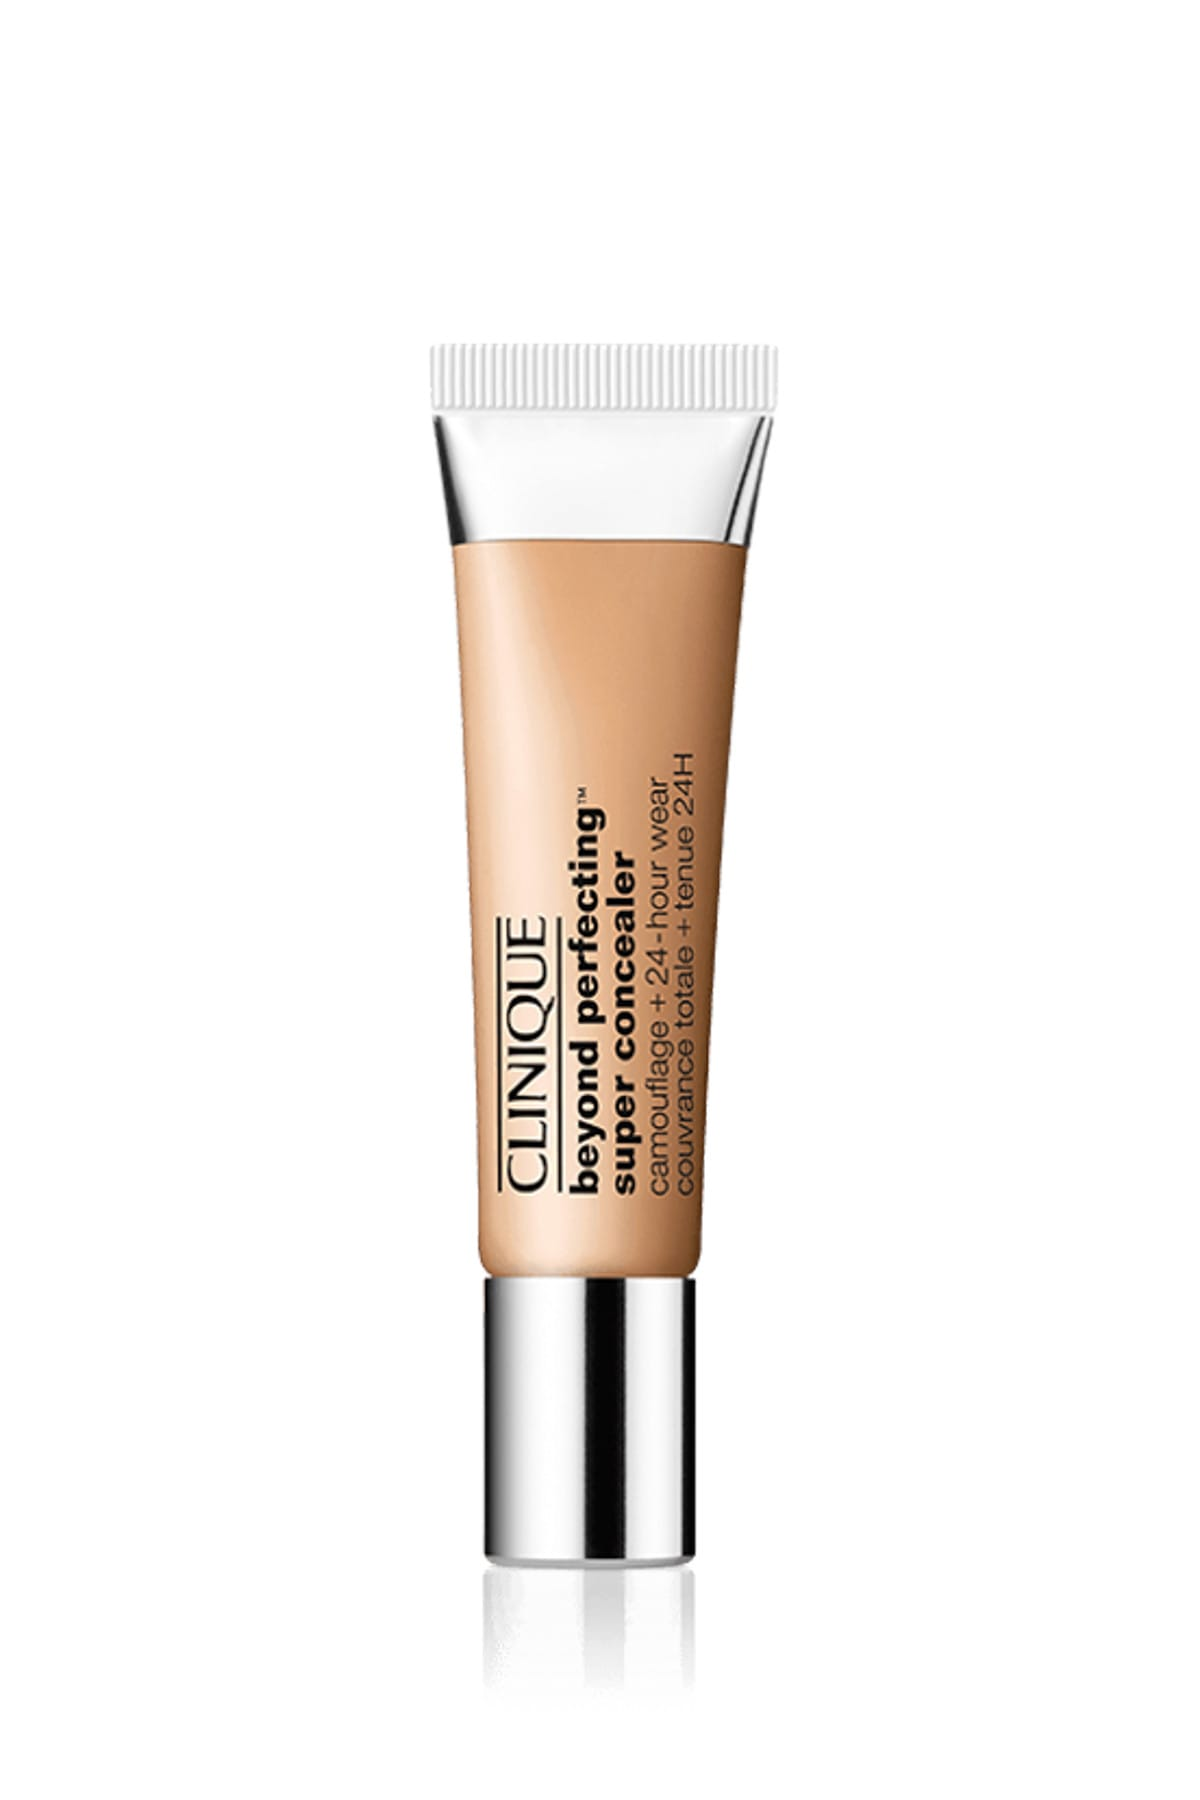 Clinique Kapatıcı - Beyond Perfecting Super Concealer Camouflage Medium 18 1